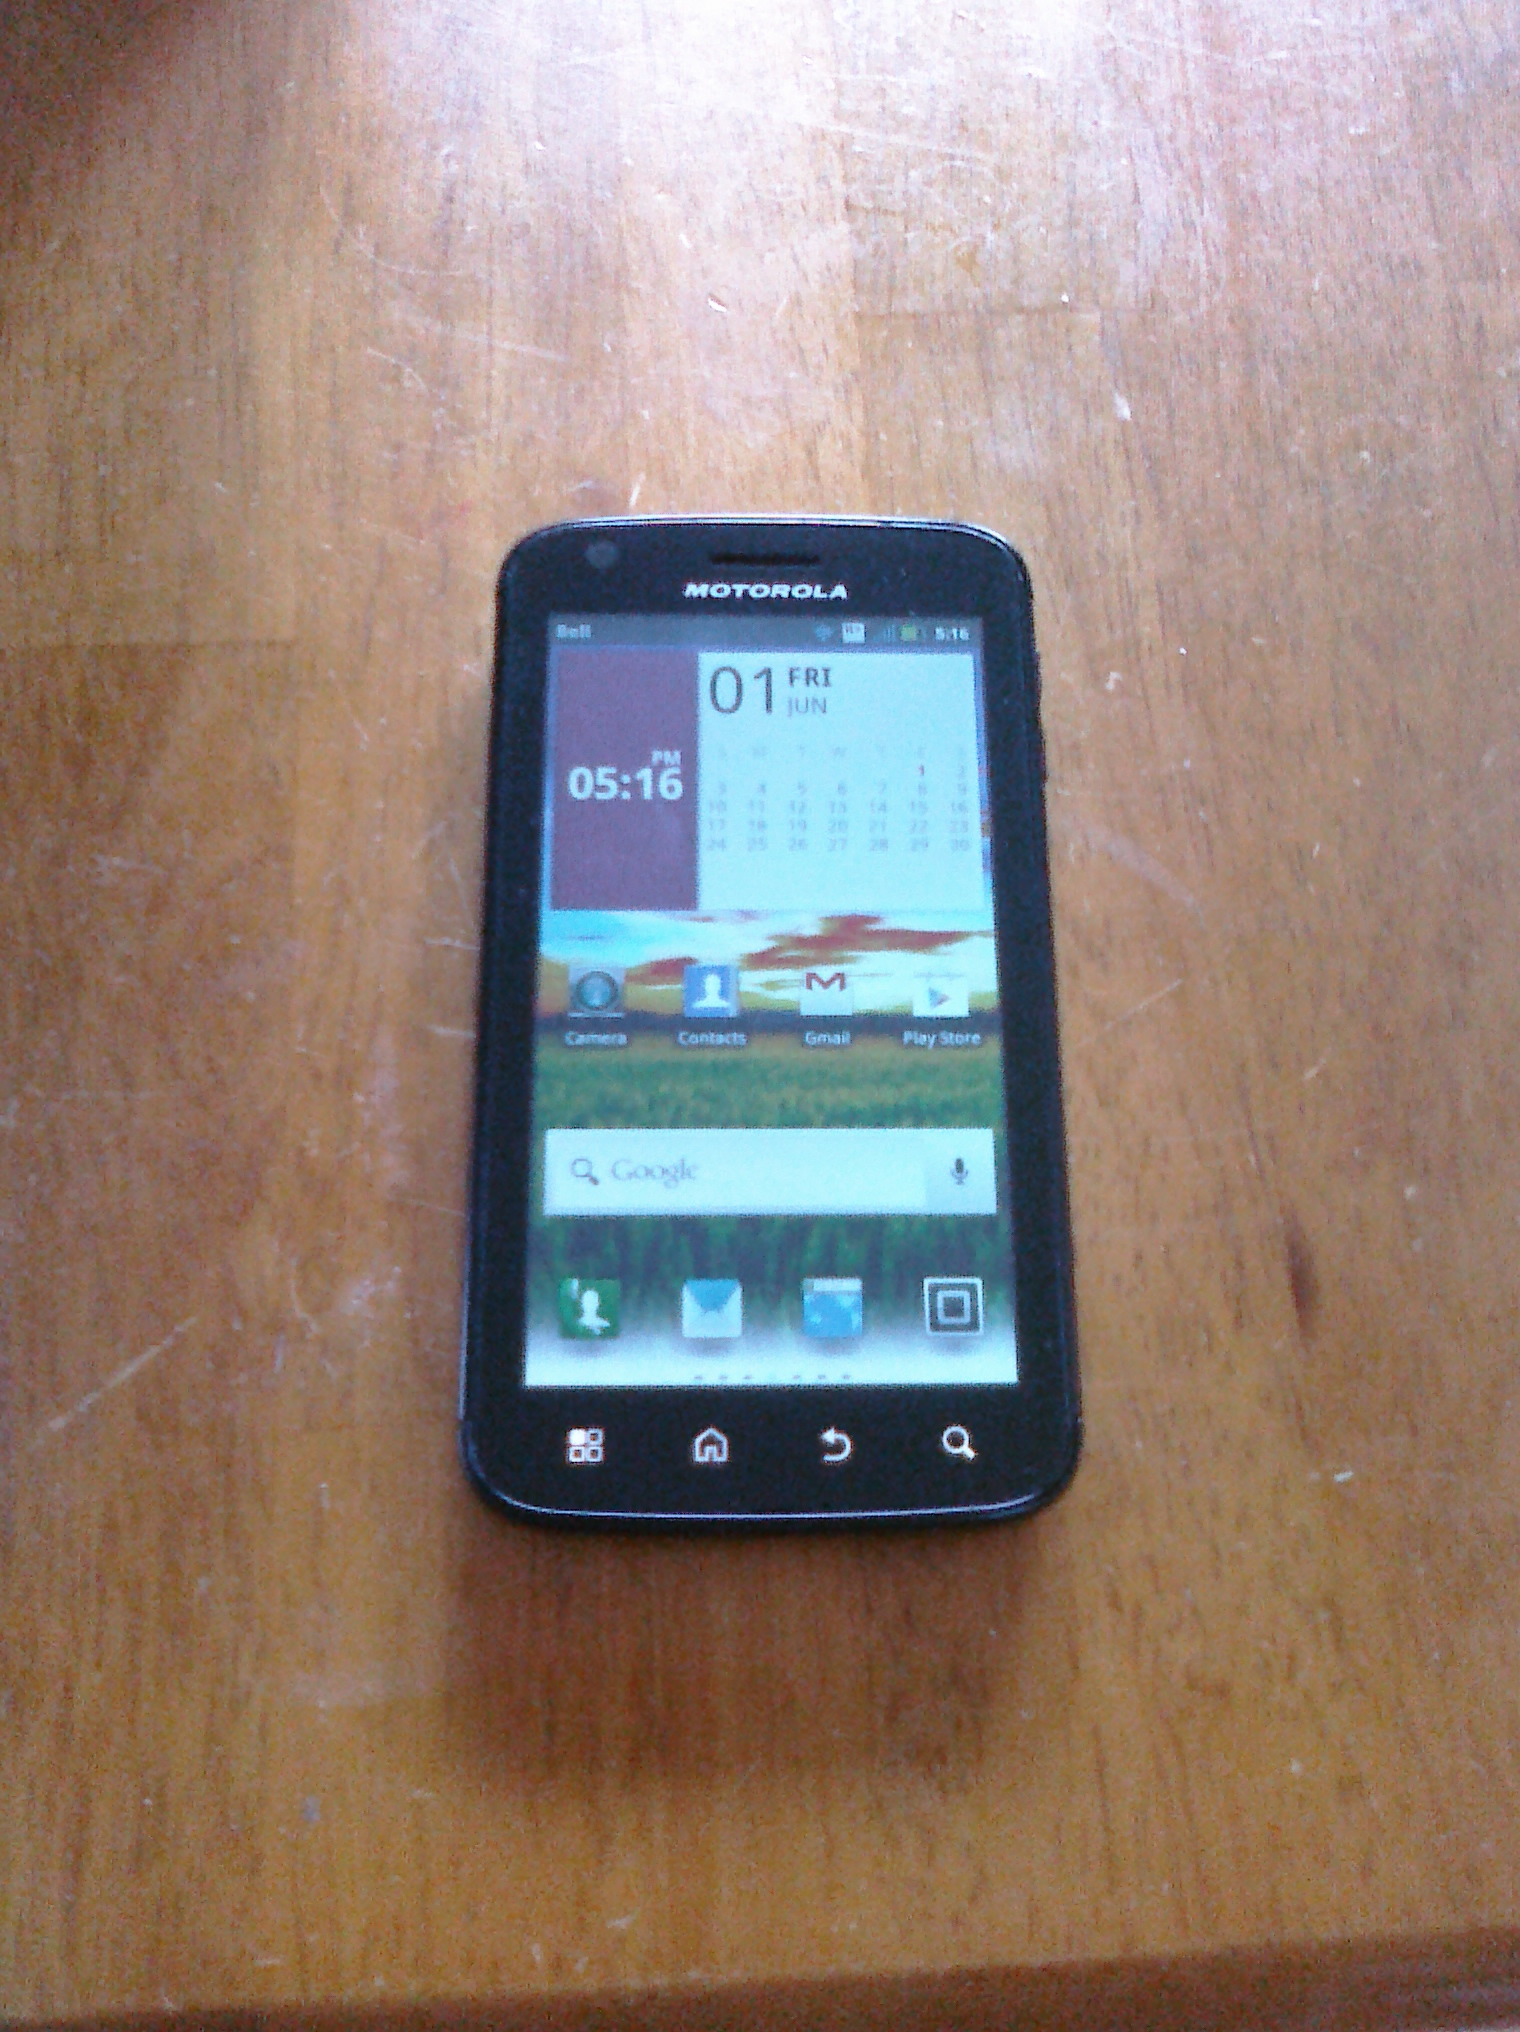 Motorola Atrix 4G   Wikipedia  the free encyclopedia